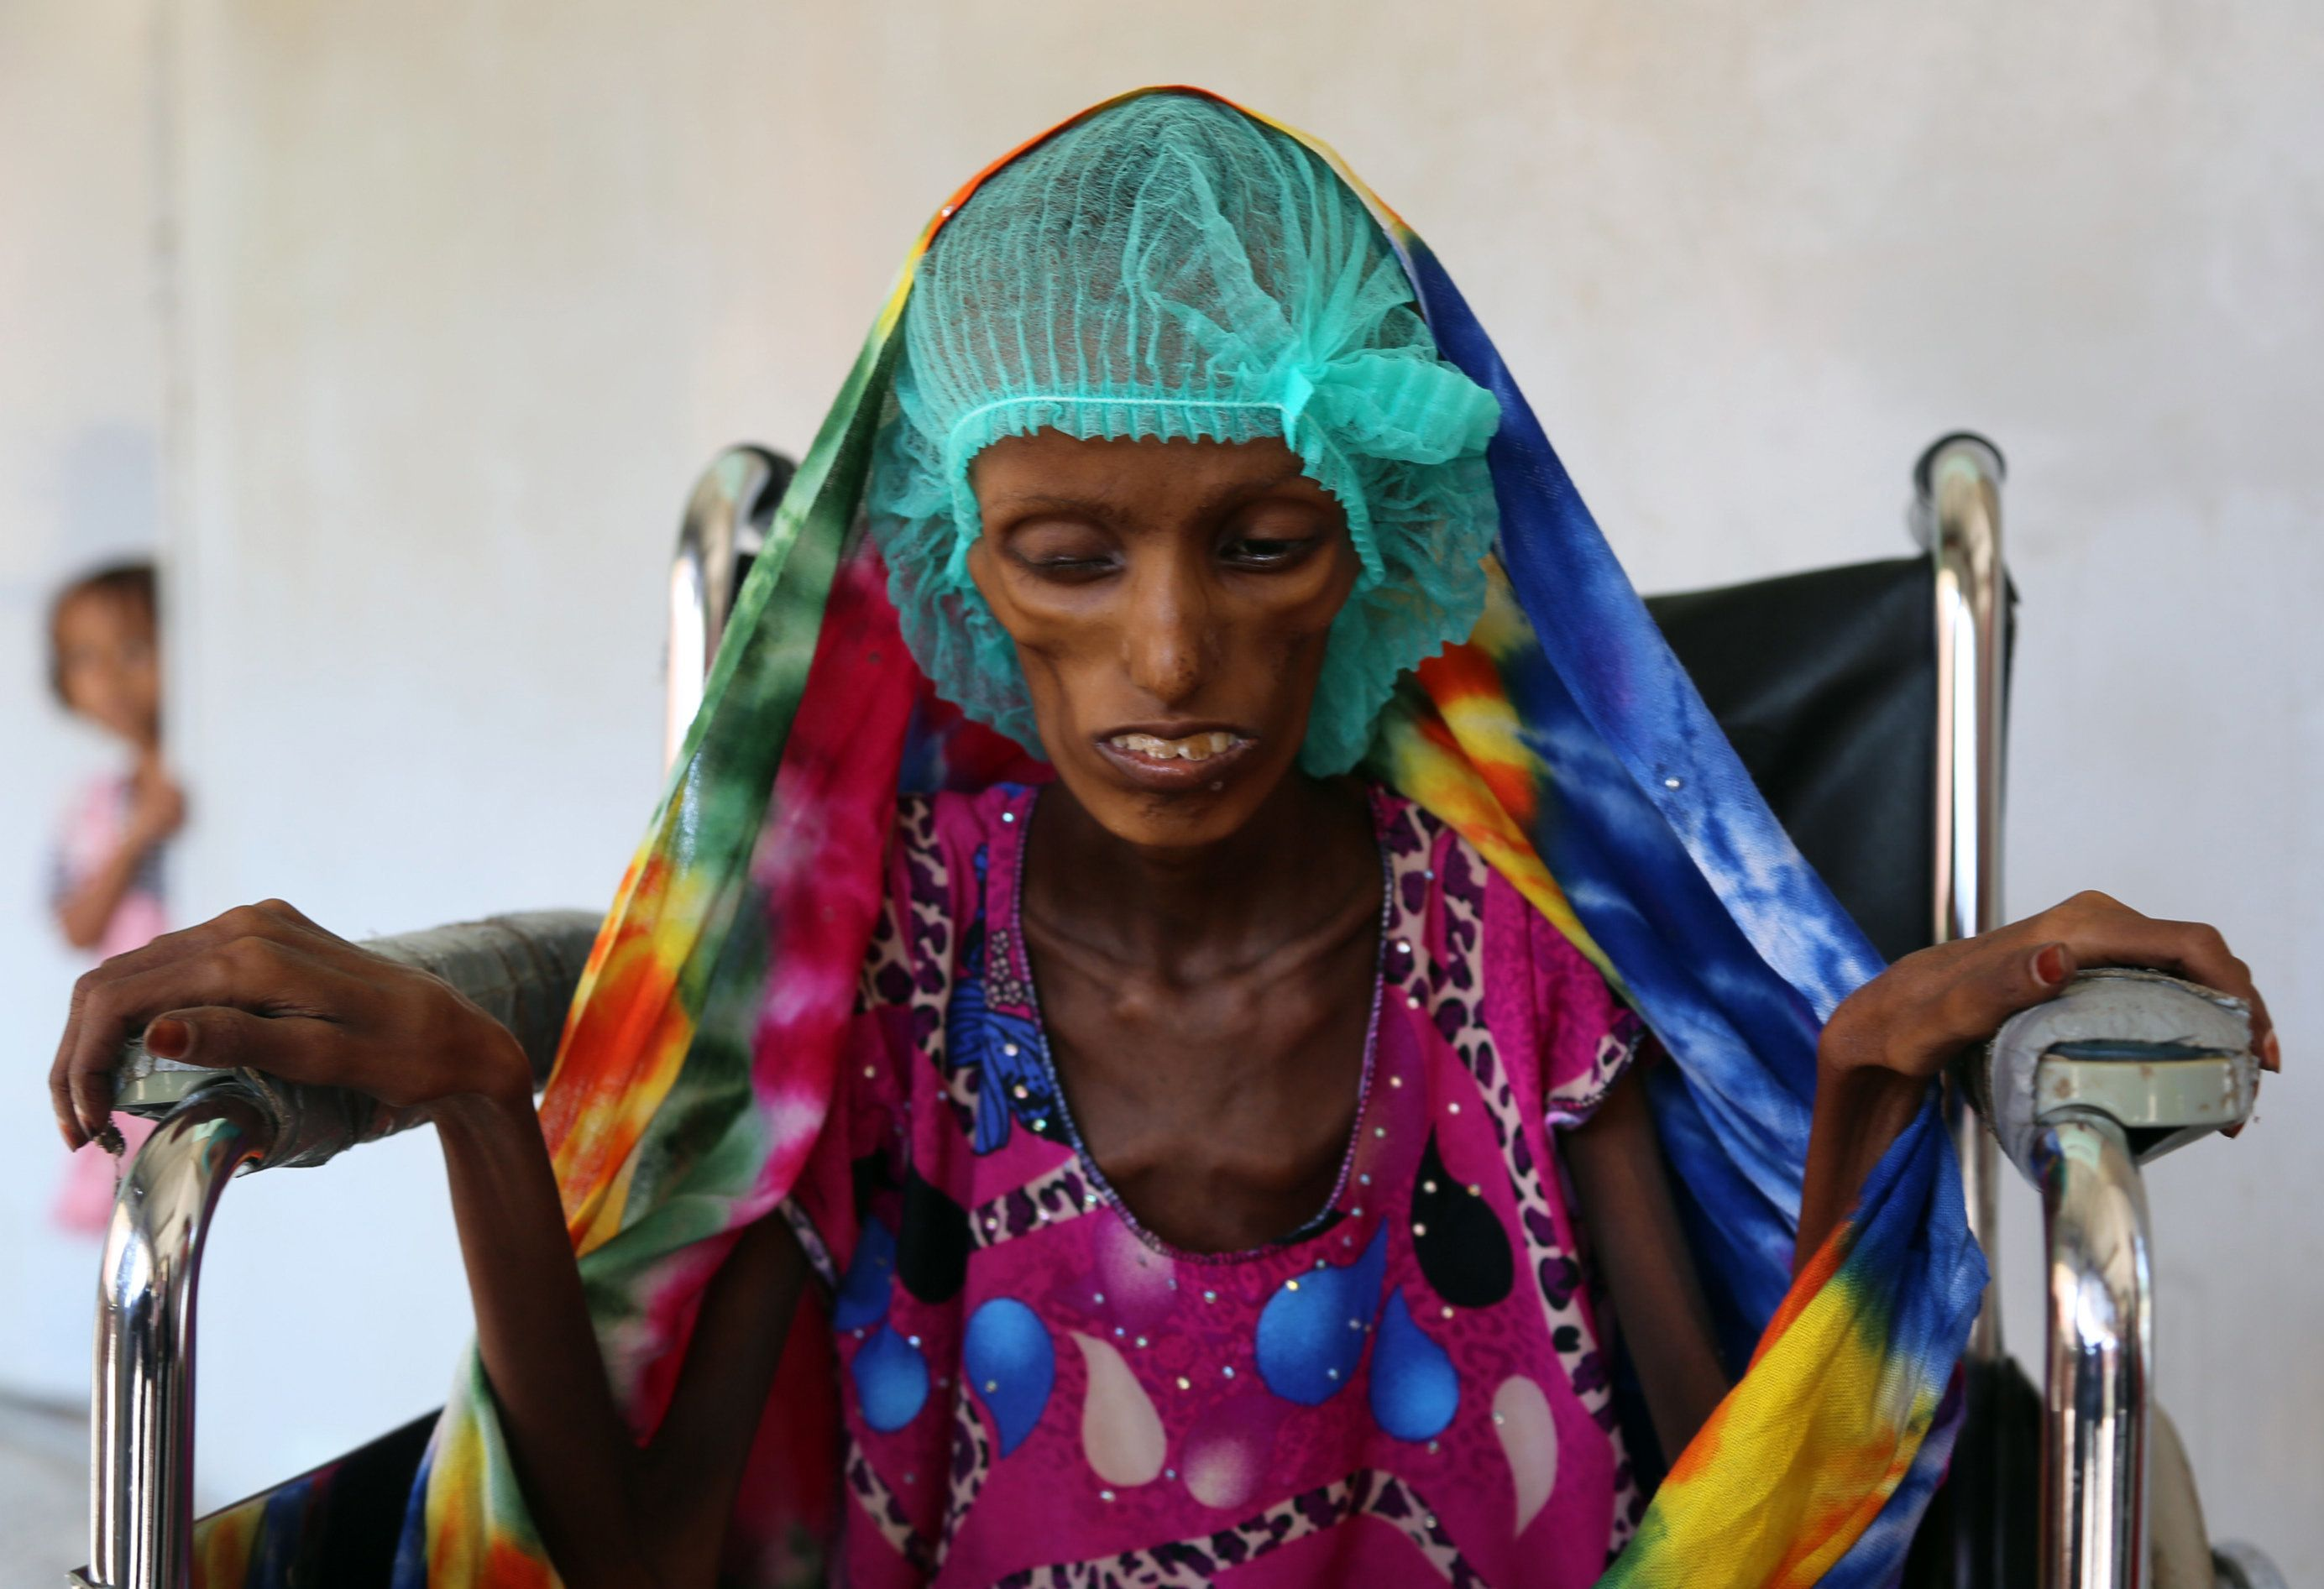 Saida Ahmad Baghili, an 18-year-old Yememi woman in Hodeidah. The city has already been hit hard by food scarcity. The closur